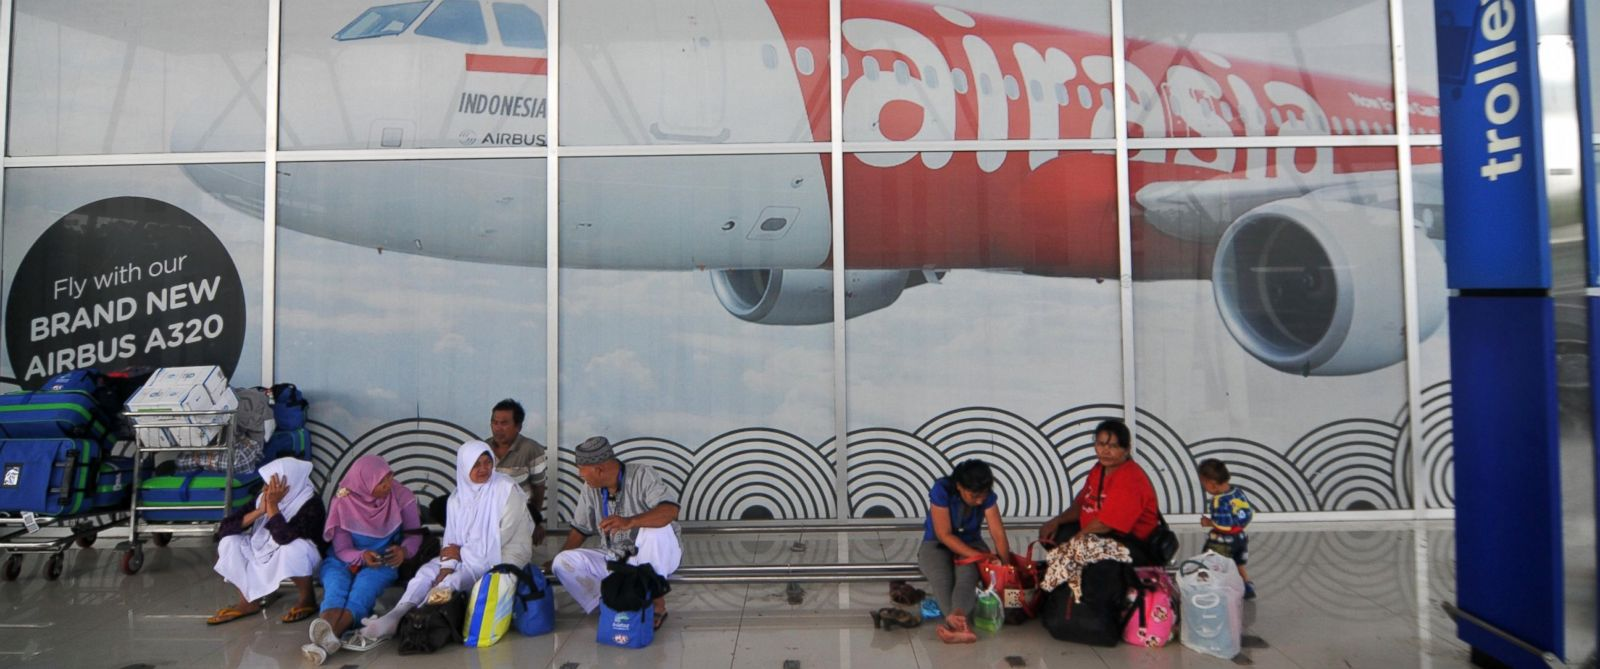 PHOTO: People wait for their families in front of a Air Asia billboard